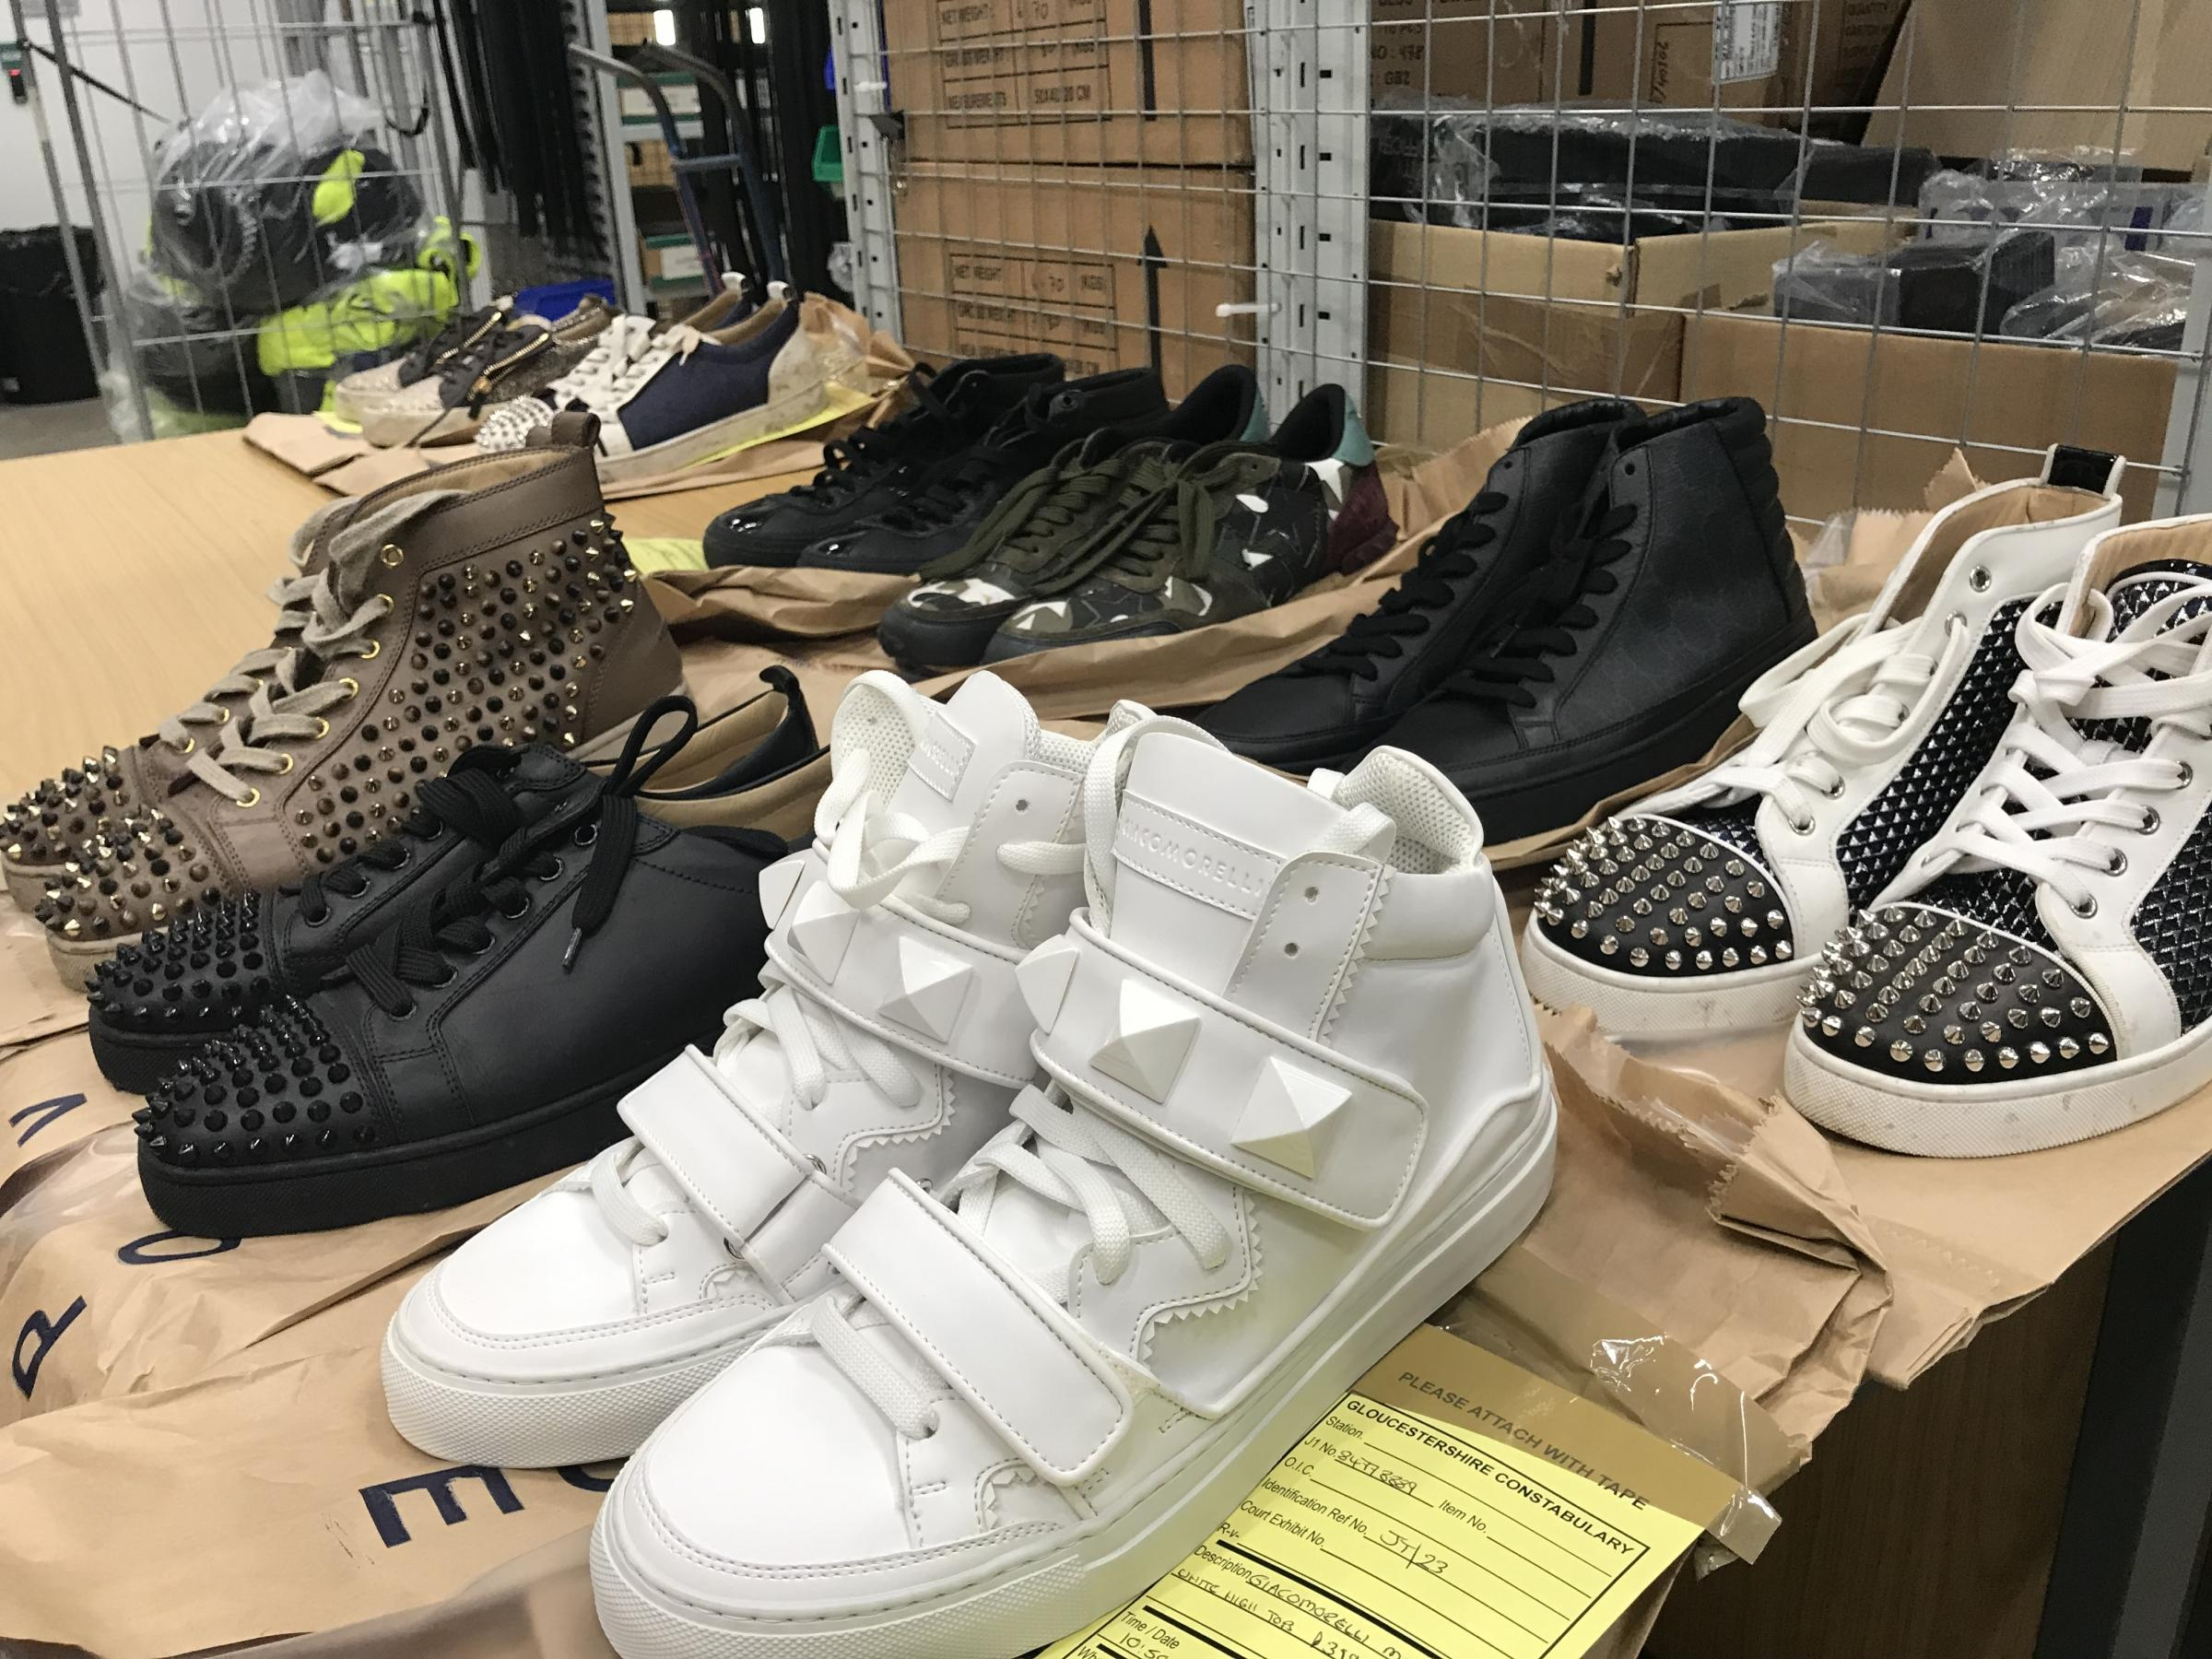 Haul of expensive trainers seized by police in Gloucester. Picture: Gloucestershire Constabulary